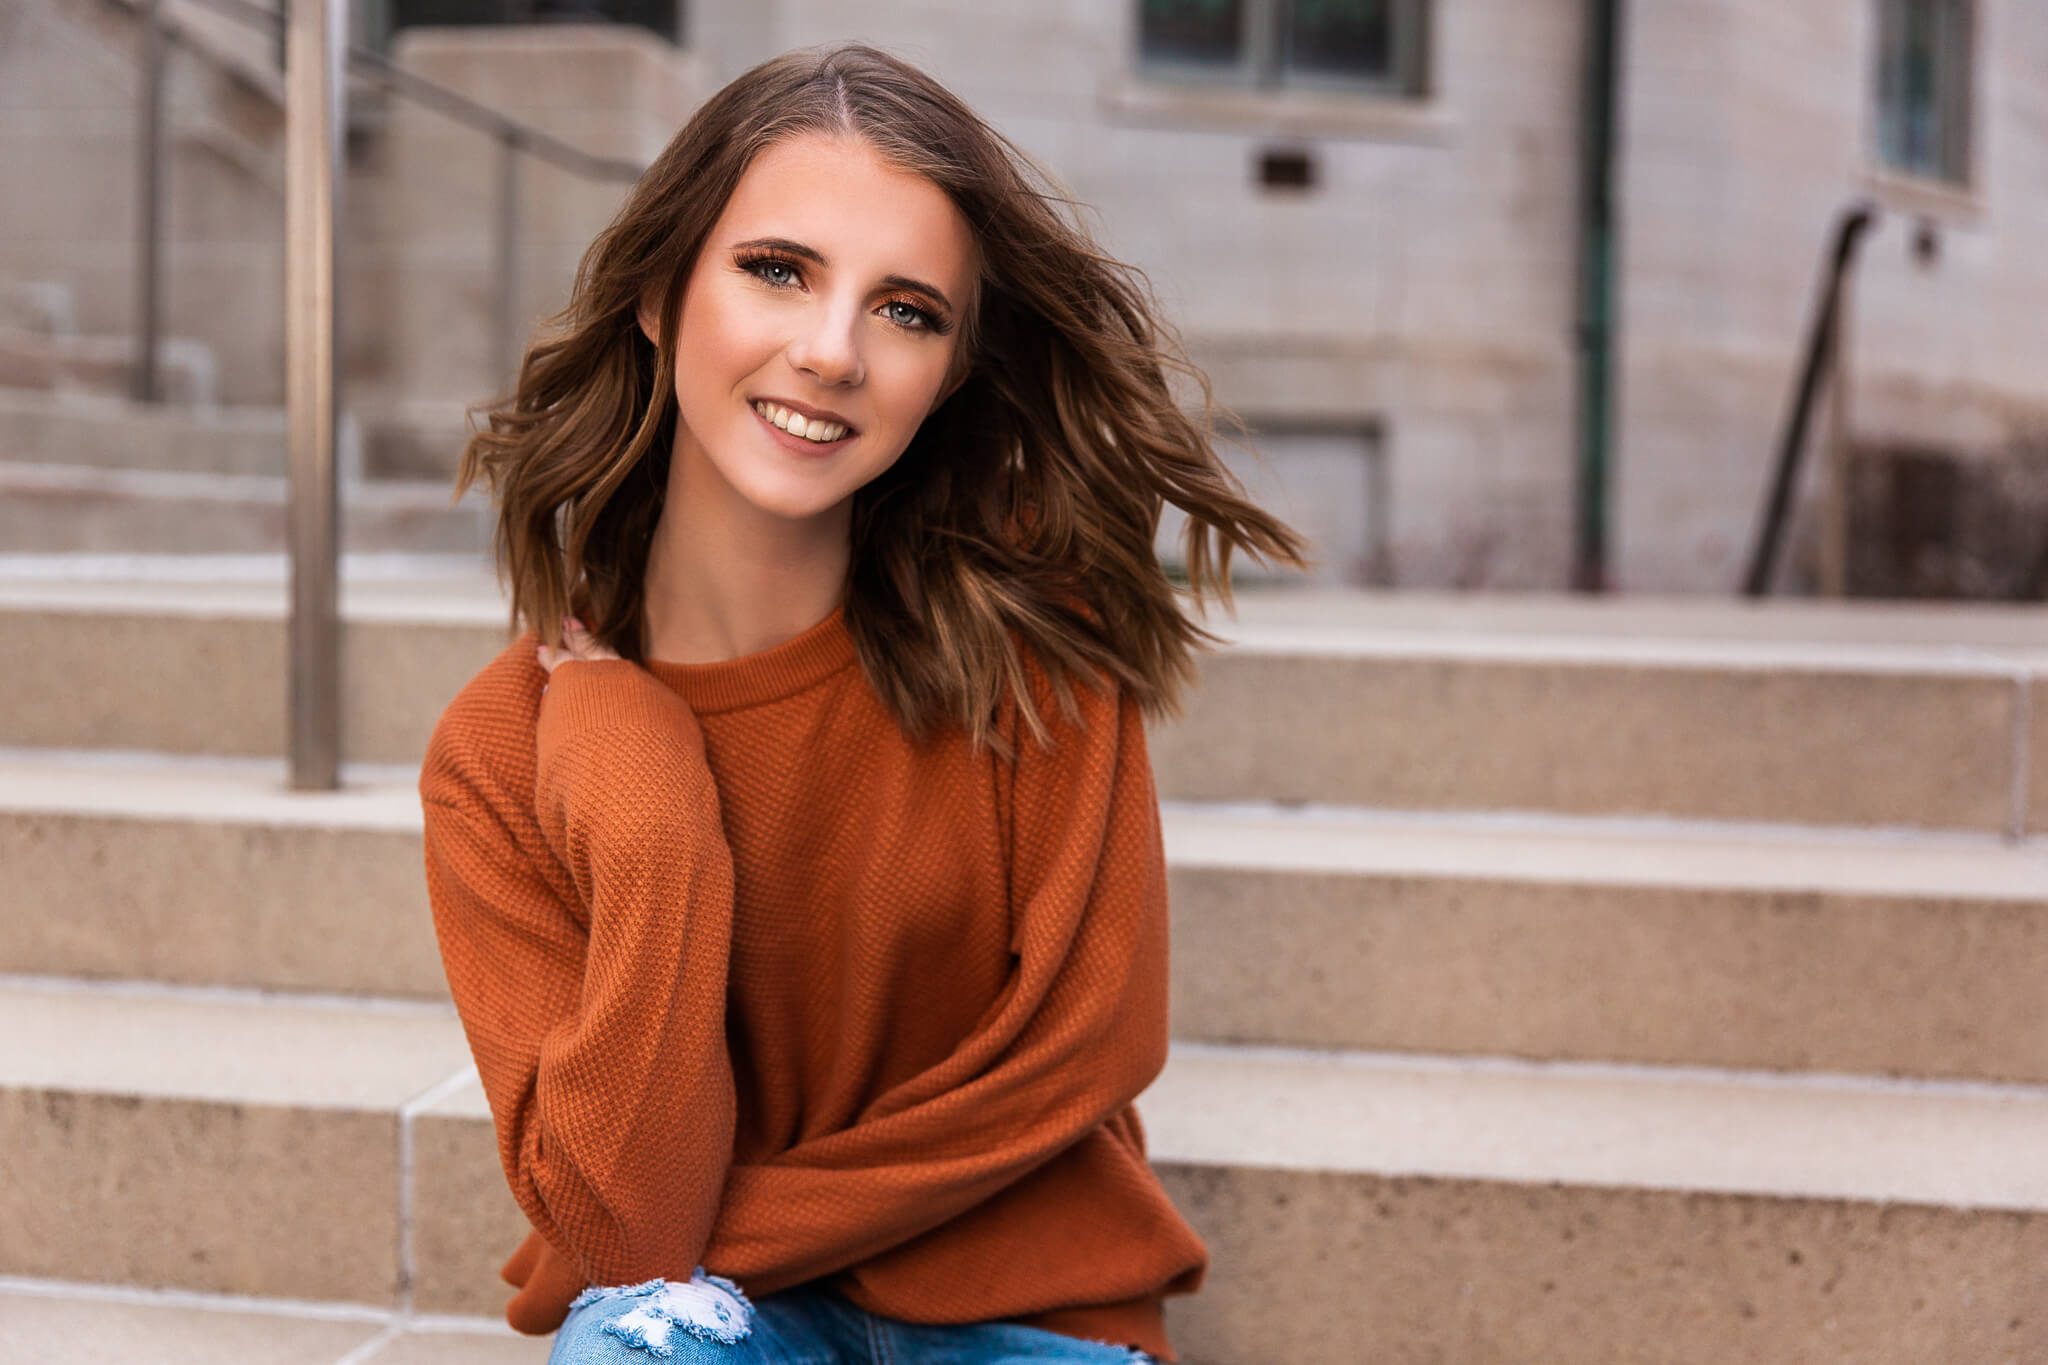 sioux-city-senior-photography-stairs-sweater-short-hair-suing-studios.jpg